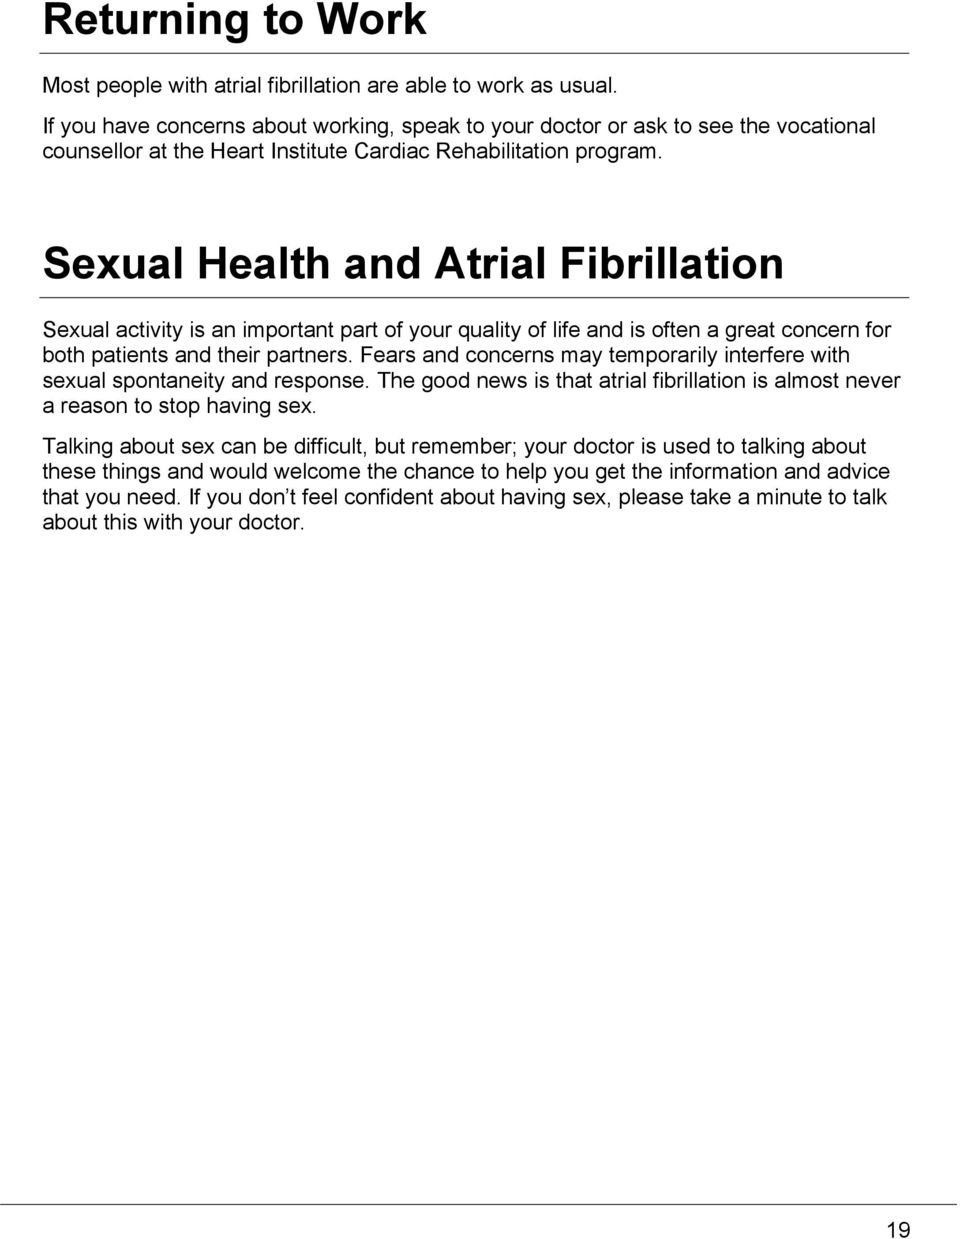 Sexual Health and Atrial Fibrillation Sexual activity is an important part of your quality of life and is often a great concern for both patients and their partners.